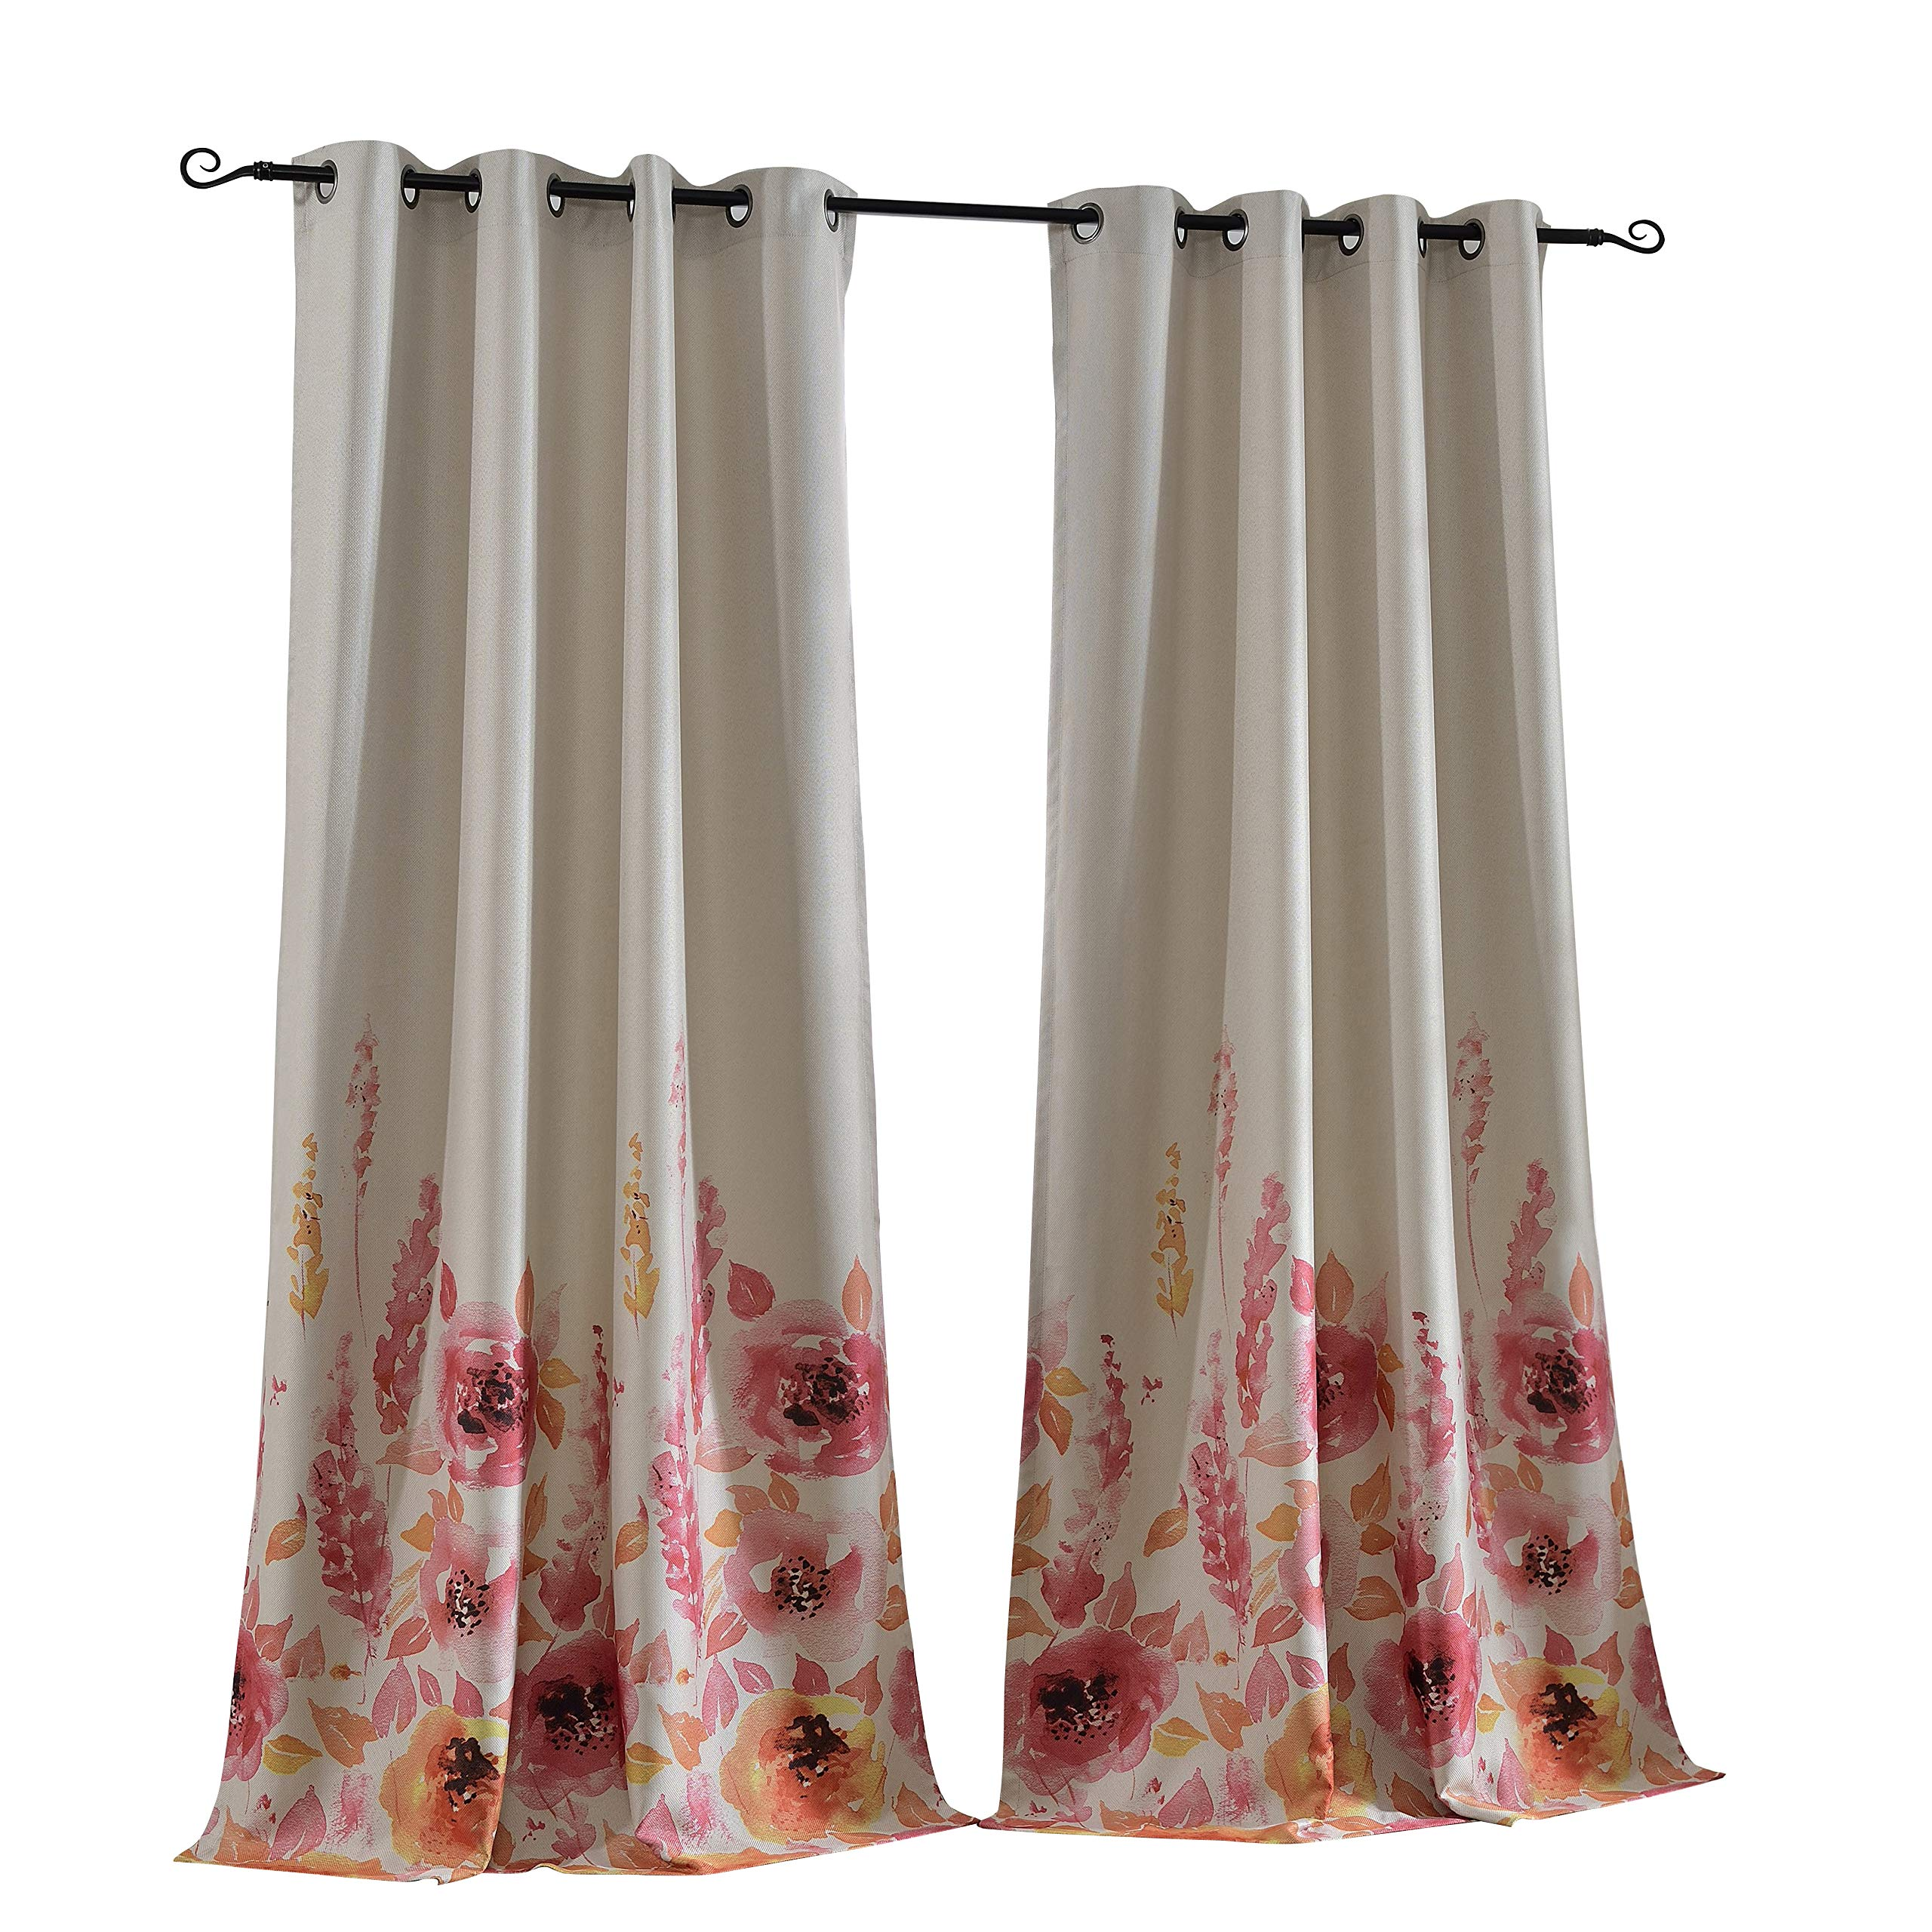 Home Office Curtains In Mysky Home Floral Design Print Grommet Top Thermal Insulated Faux Linen Room Darkening Curtains 52 Curtains For Home Office Amazoncom